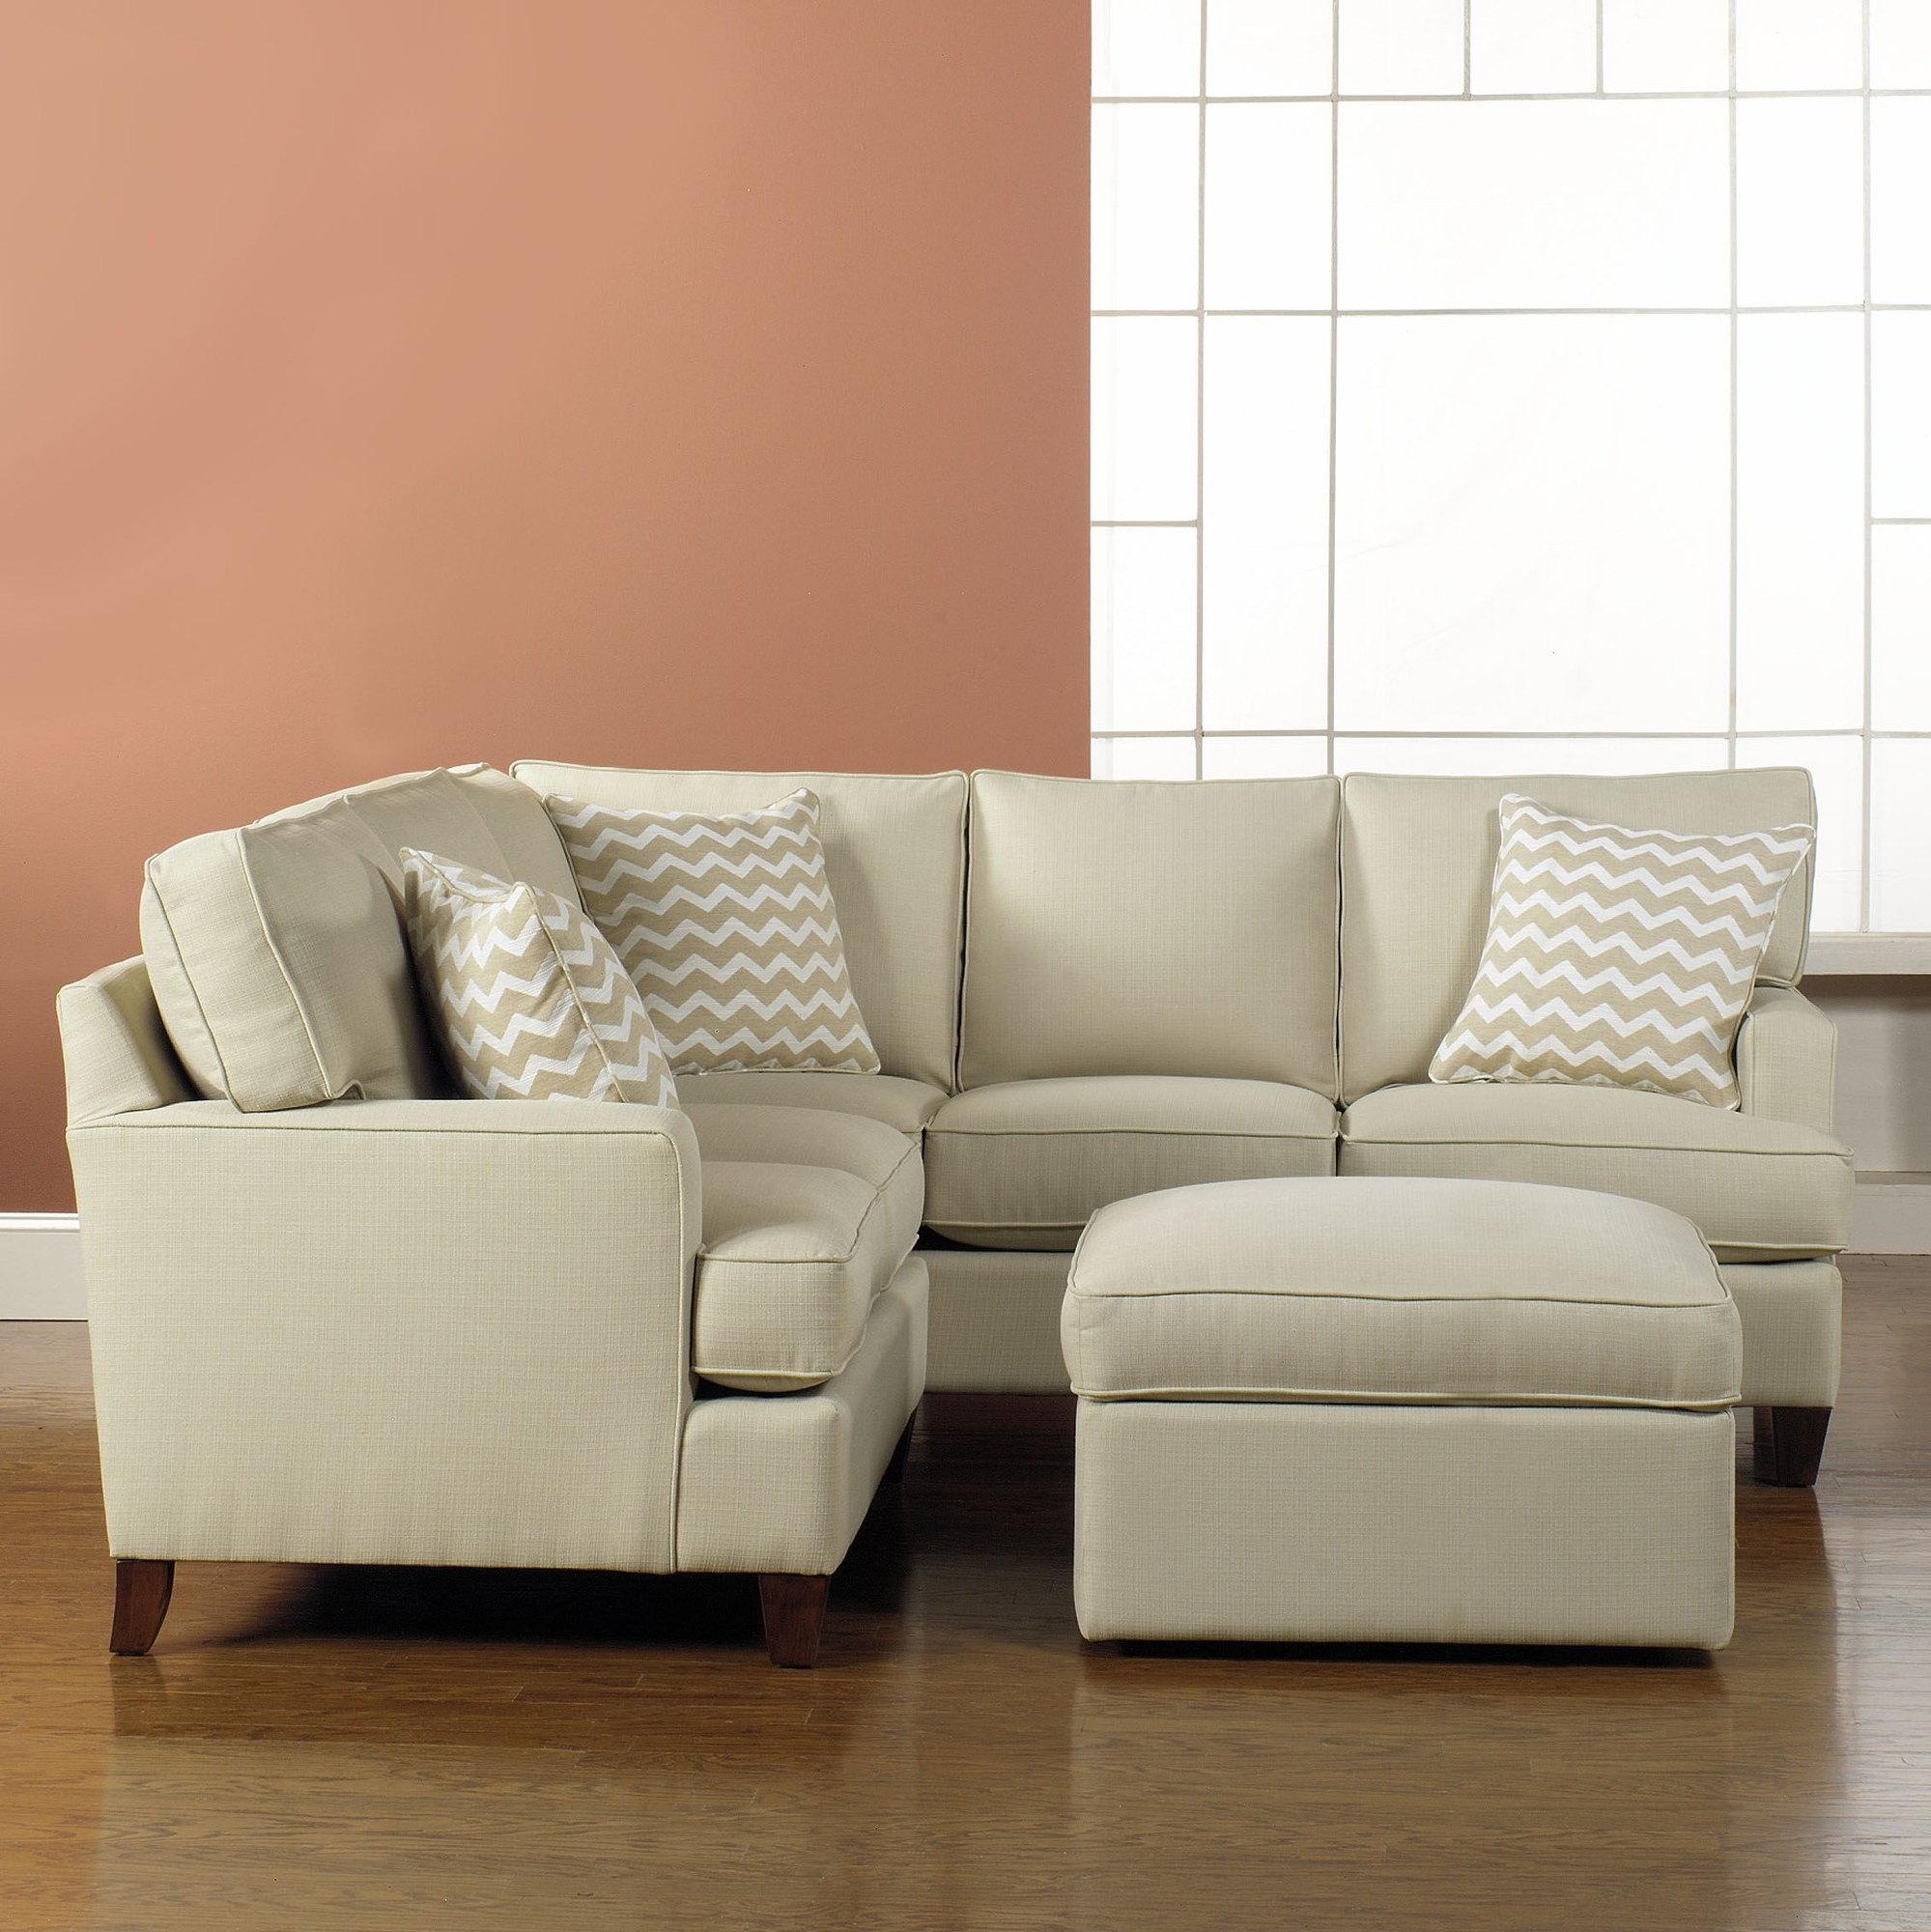 Most Recently Released Sectional Sofas For Small Rooms In Awesome Small Sectional Sofa For Small Spaces – Buildsimplehome (View 6 of 20)